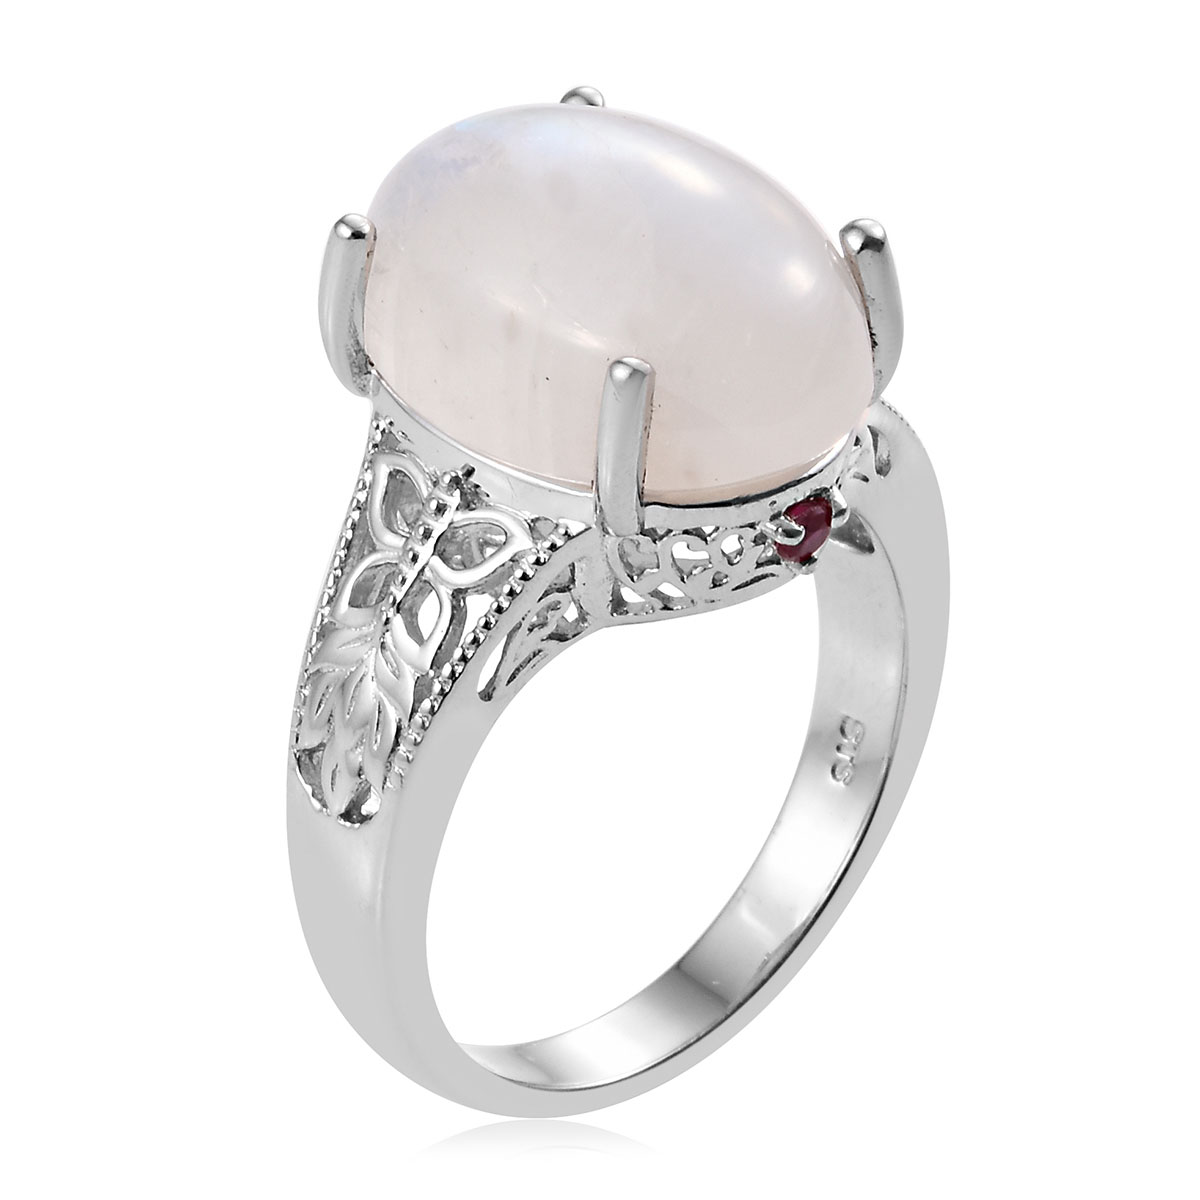 Rainbow Moonstone, Mundarara Ruby Ring in Platinum Over Sterling Silver (Size 7.0) 13.75 ctw